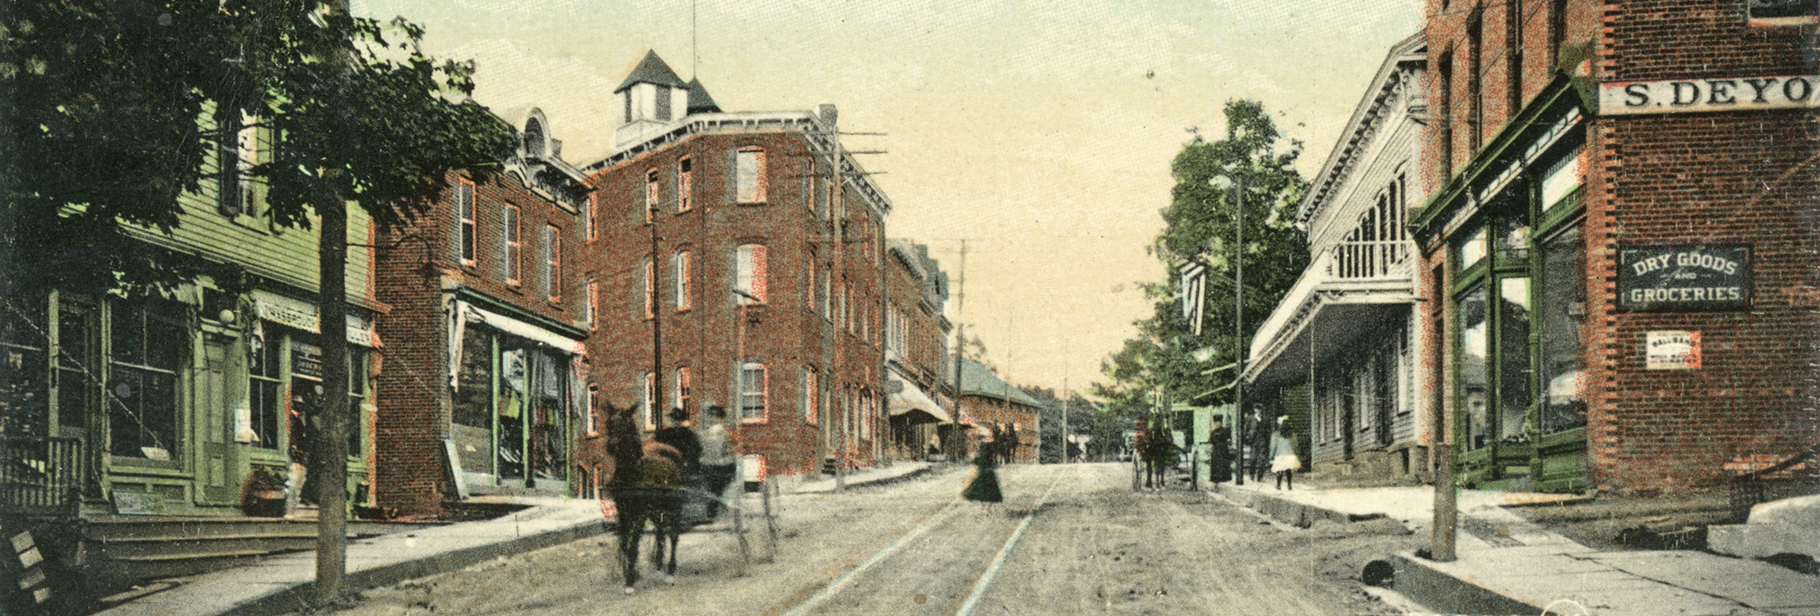 historic postcard of Main Street in New Paltz